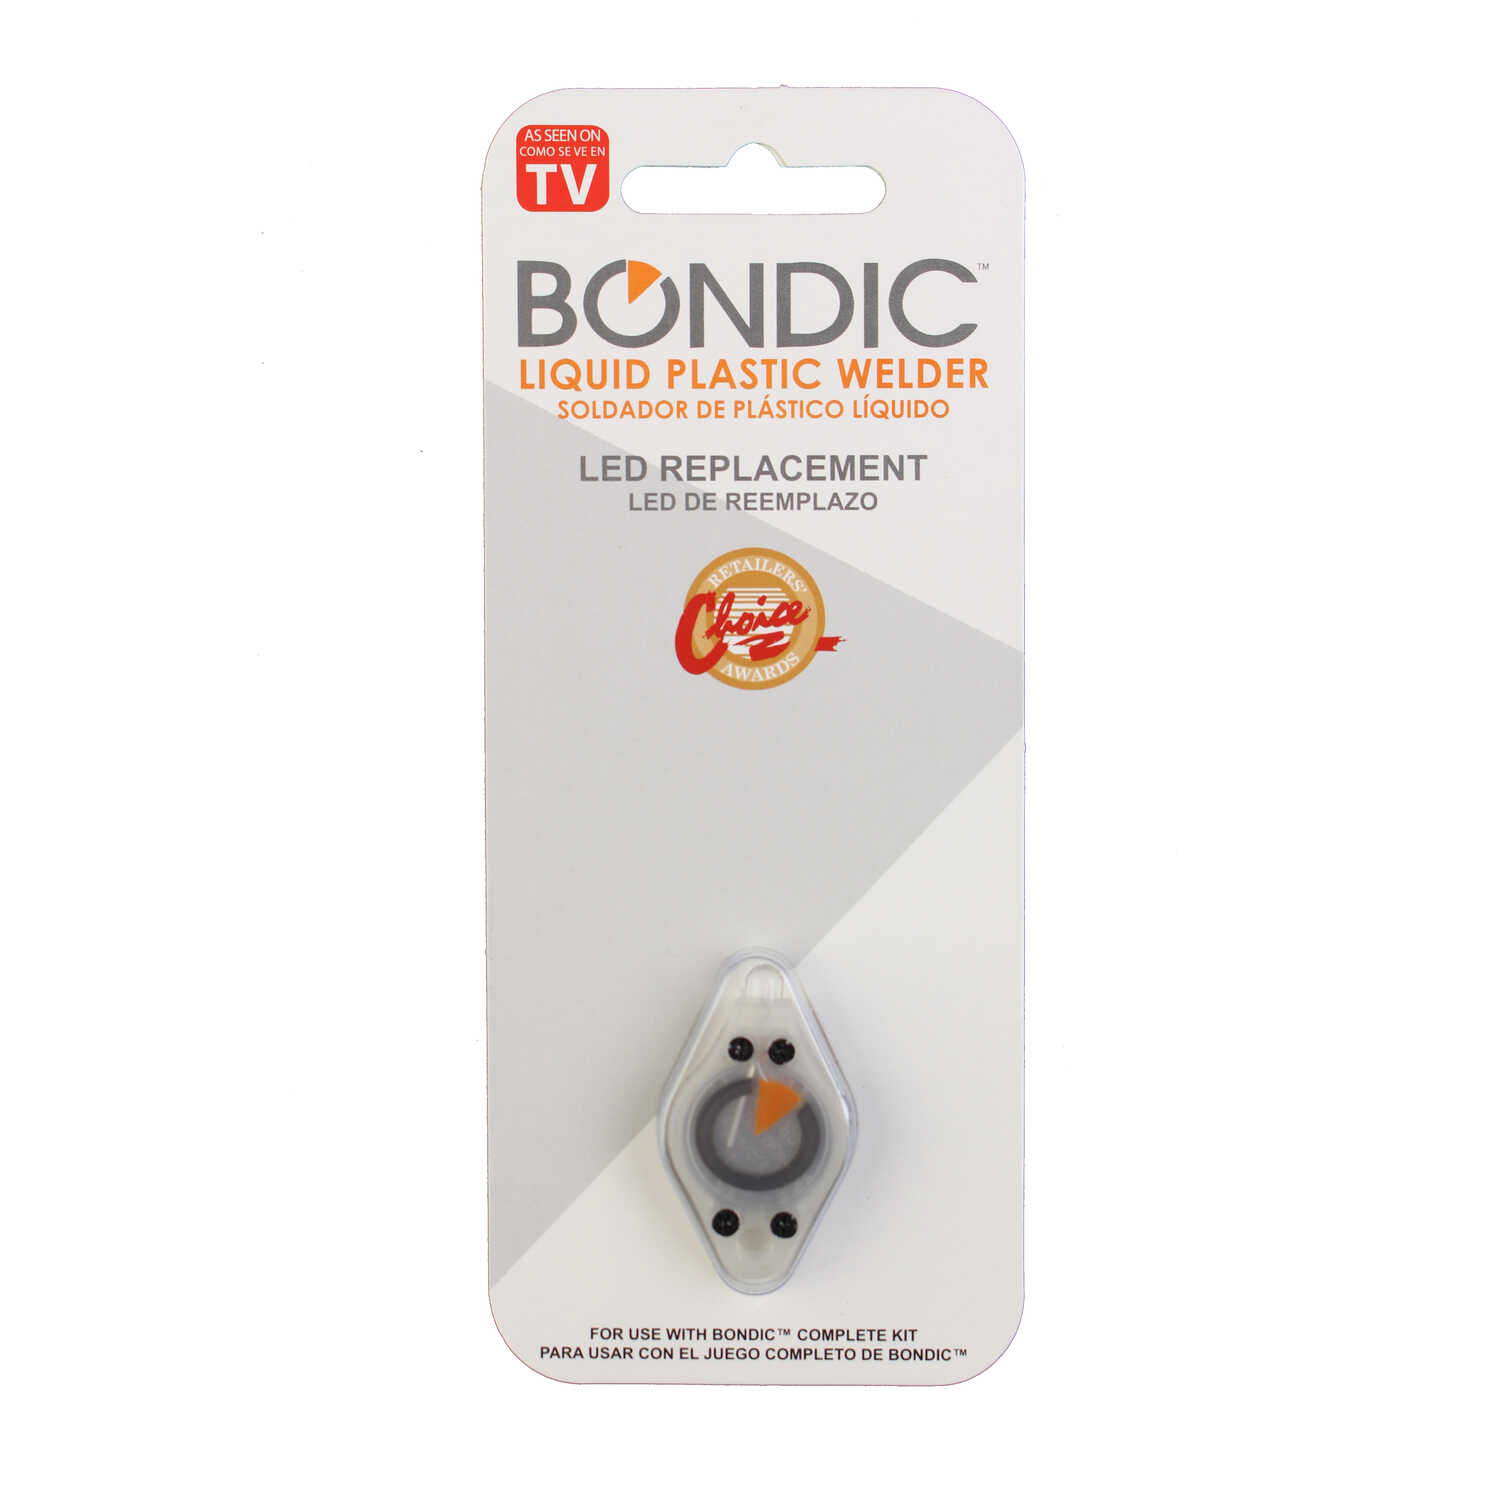 Bondic Medium Strength Led Replacement Adhesive Curing